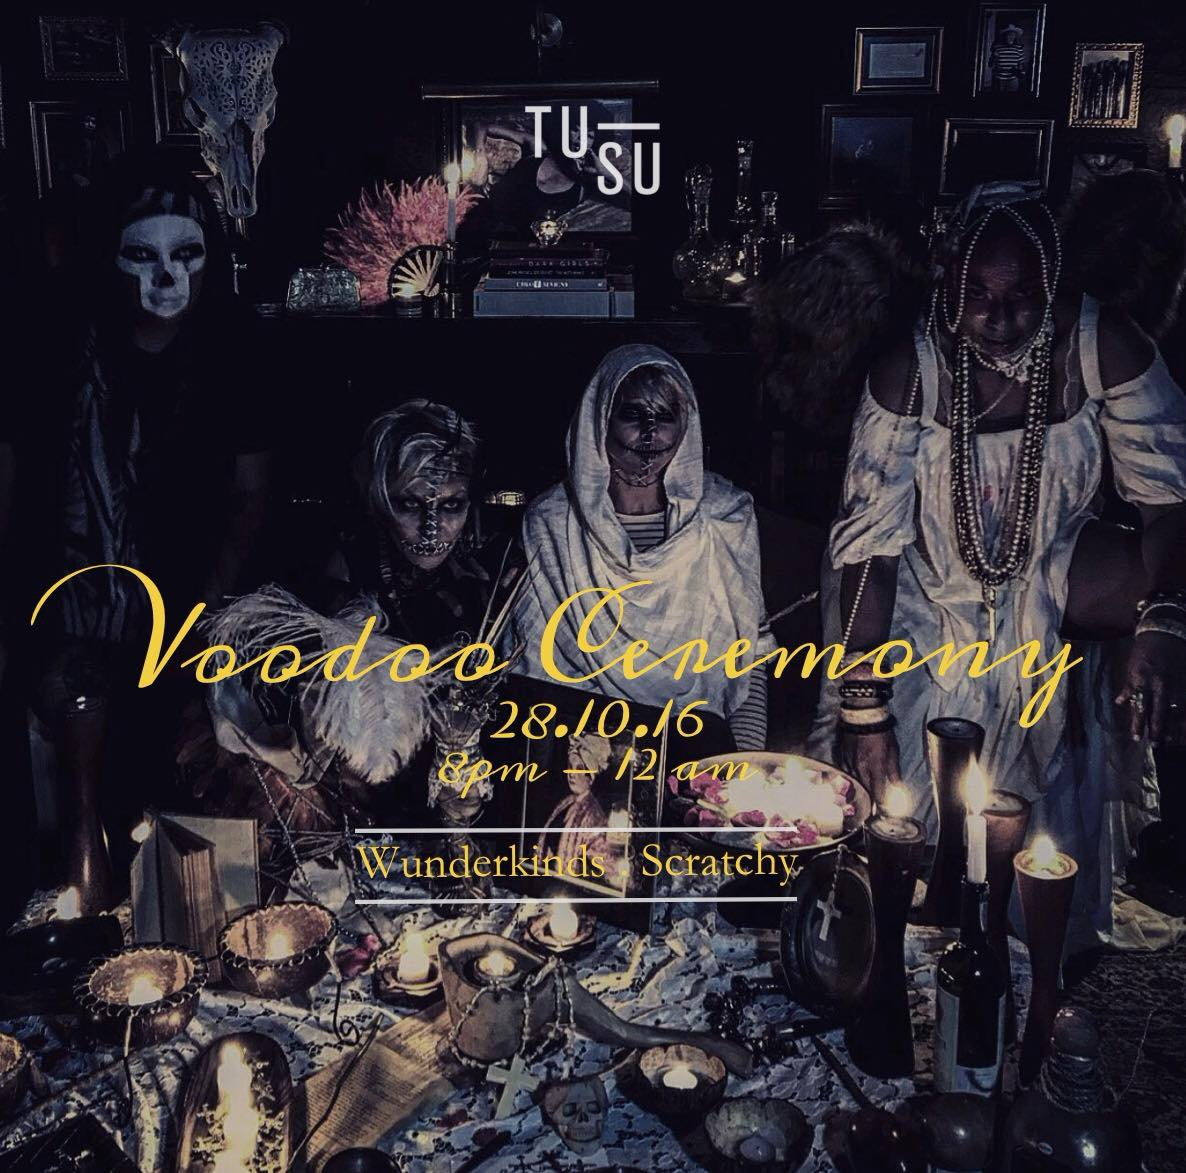 TUSU Voodoo Ceremony Halloween Party